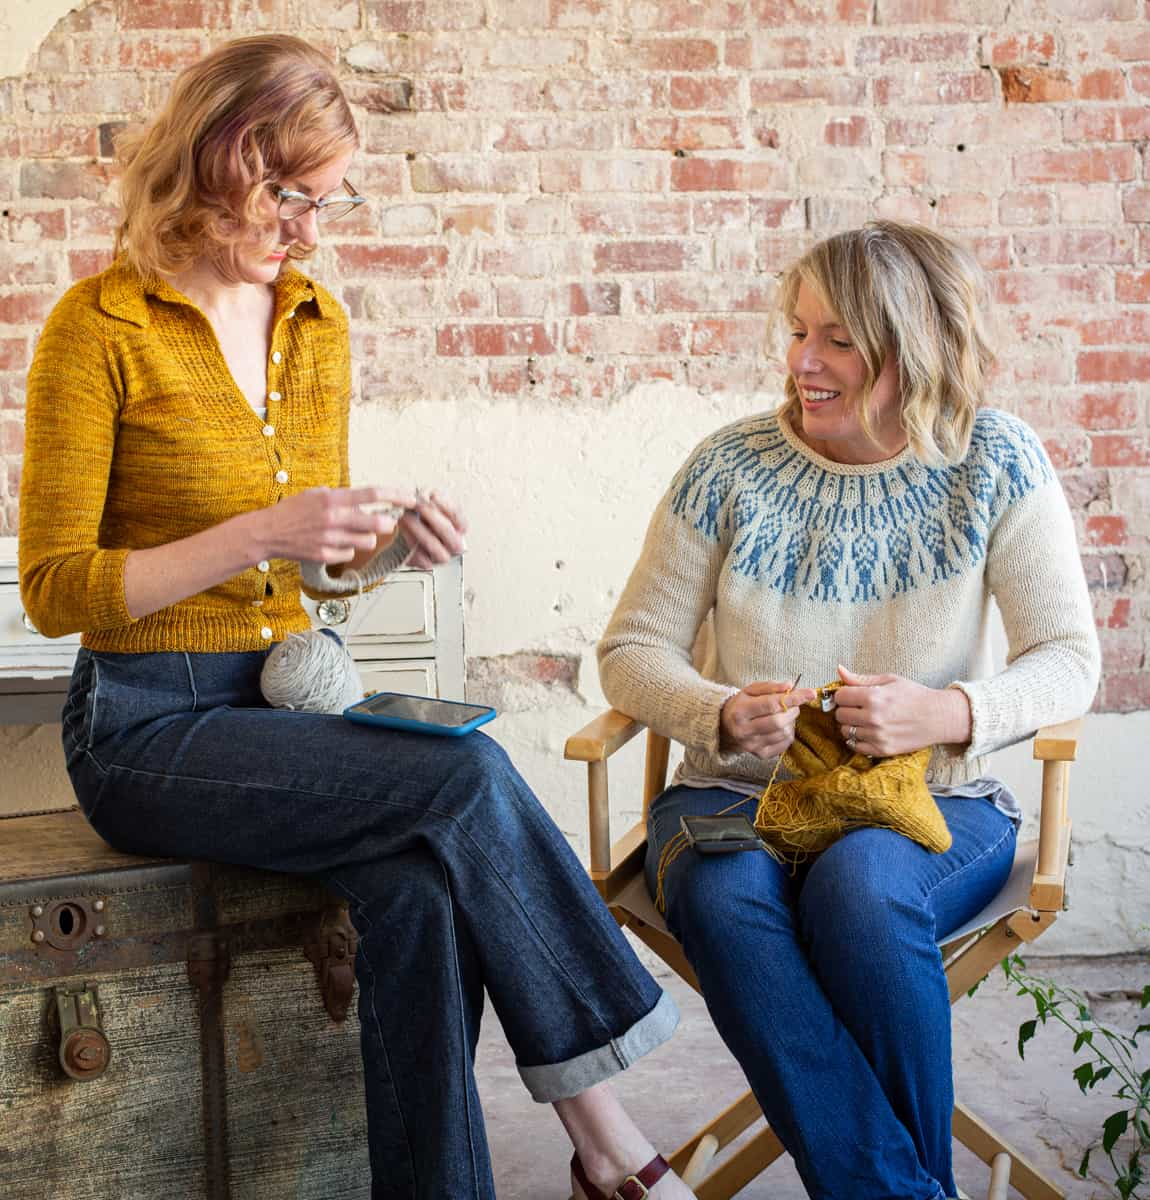 Two women knitting. They are wearing gold and blue colorwork sweaters.